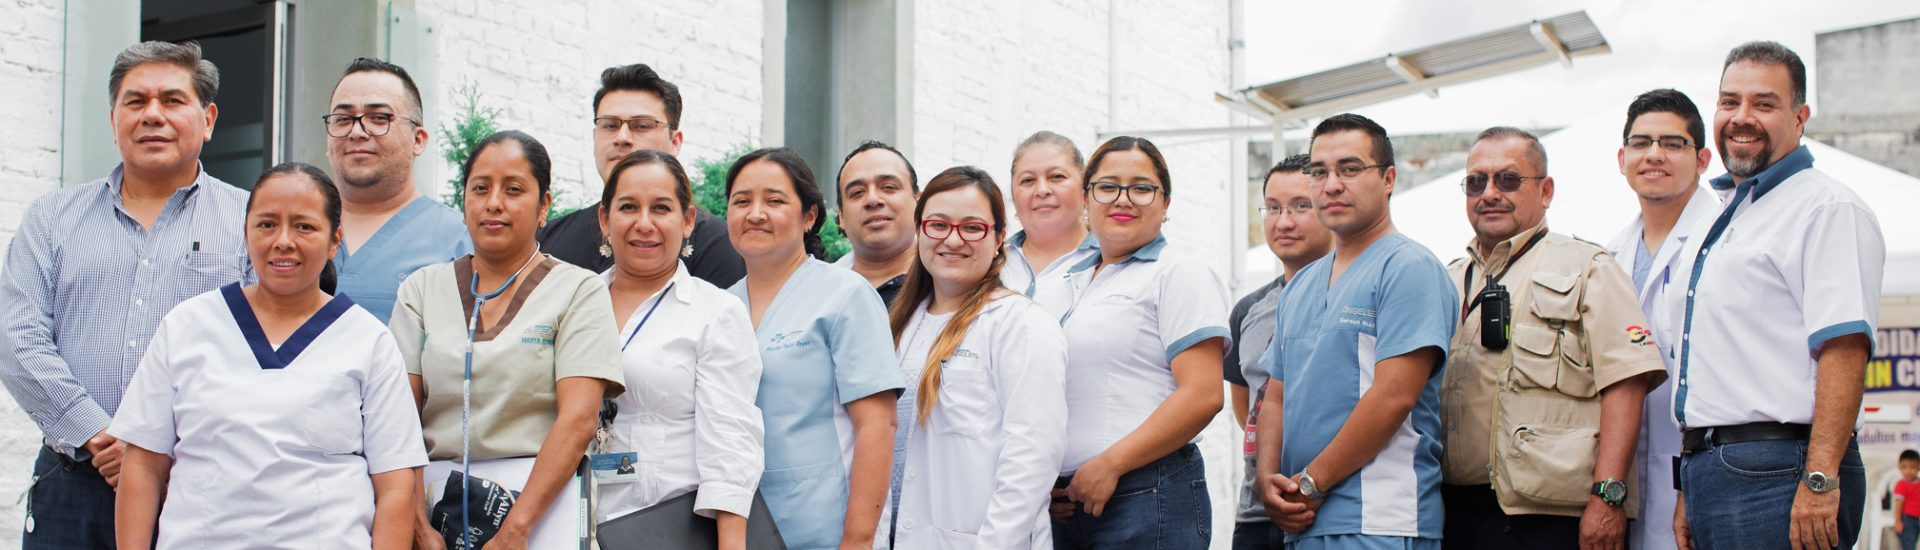 Equipo Hospital Ángeles